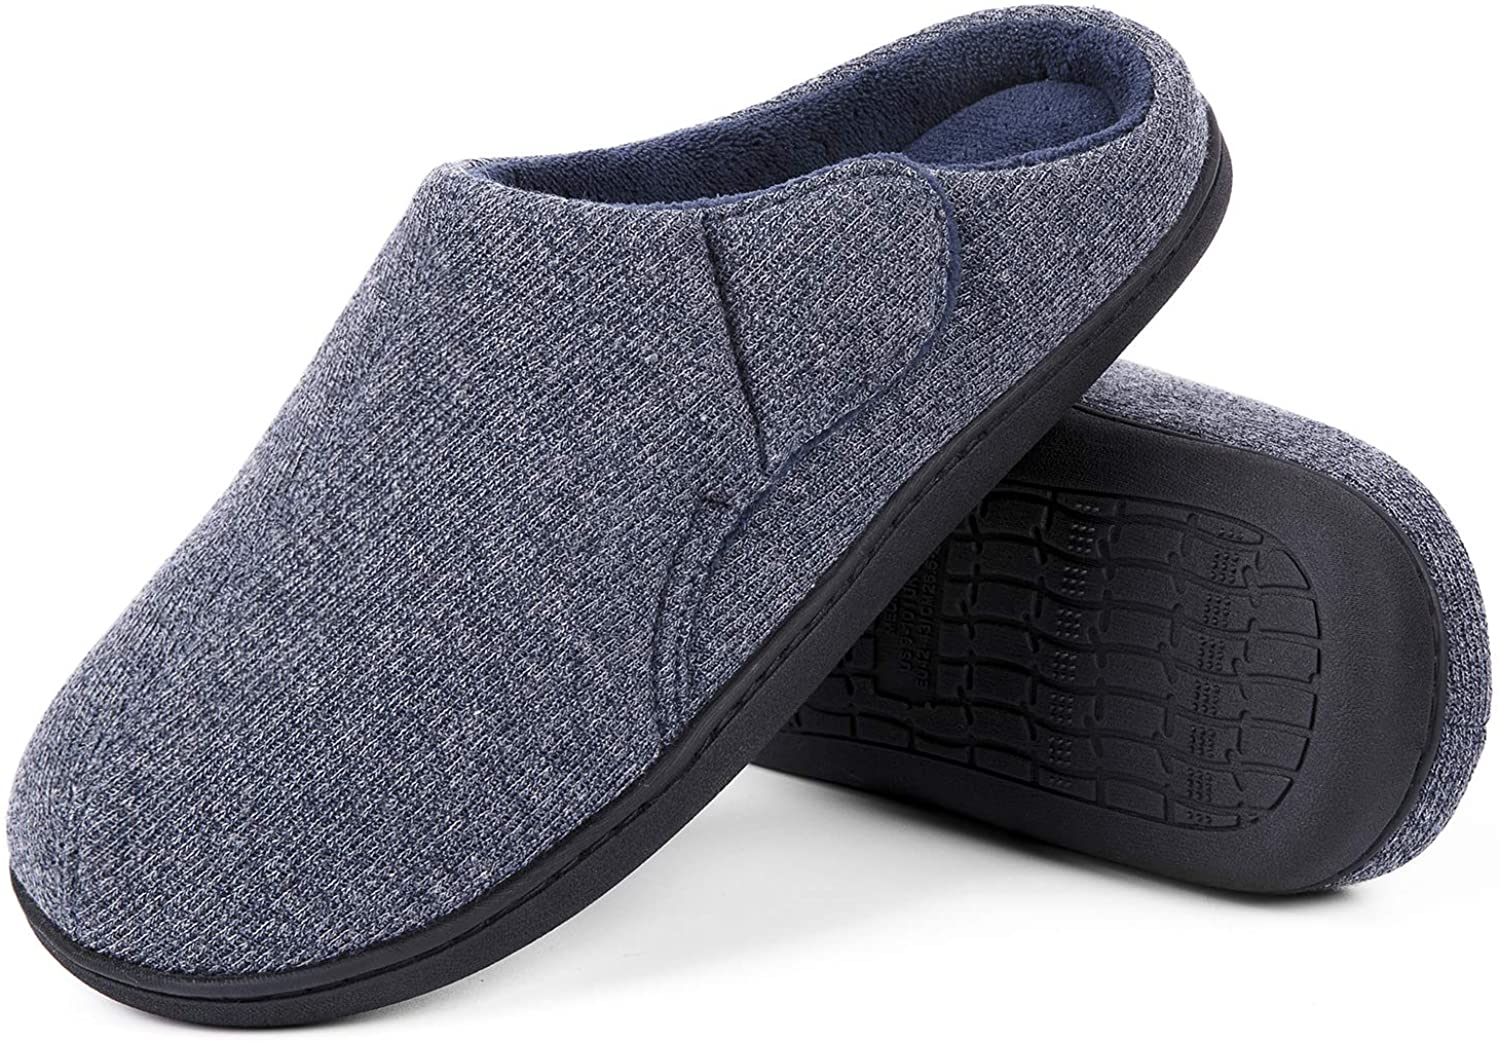 ULTRAIDEAS Women's & Men's Memory Foam Slip-on Slippers Anti-Skid House Shoes with Adjustable Straps, Indoor/Outdoor